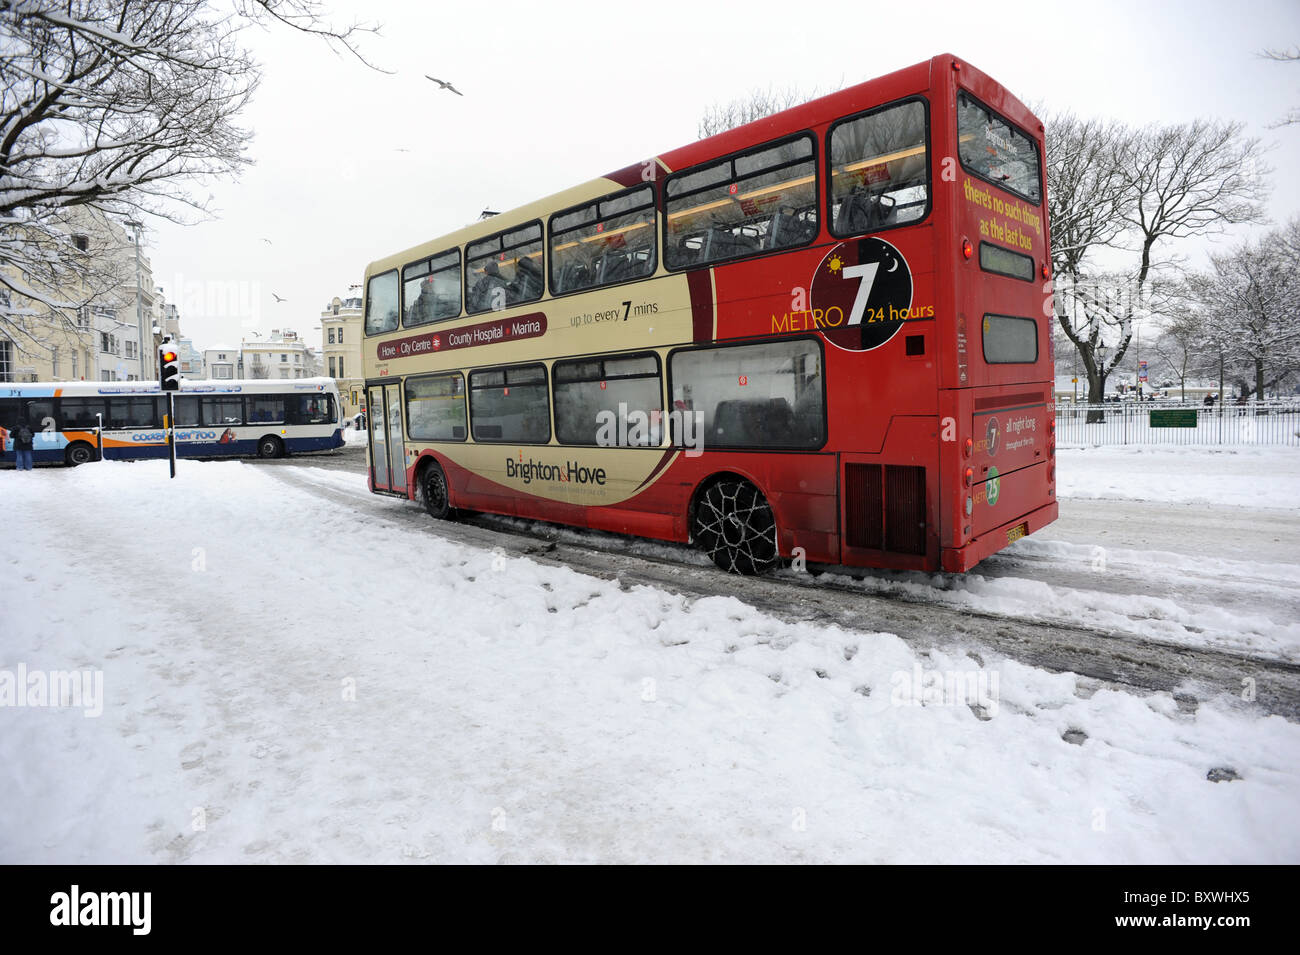 A bus using snow chains drives through Brighton after heavy snowfall covers the roads - Stock Image